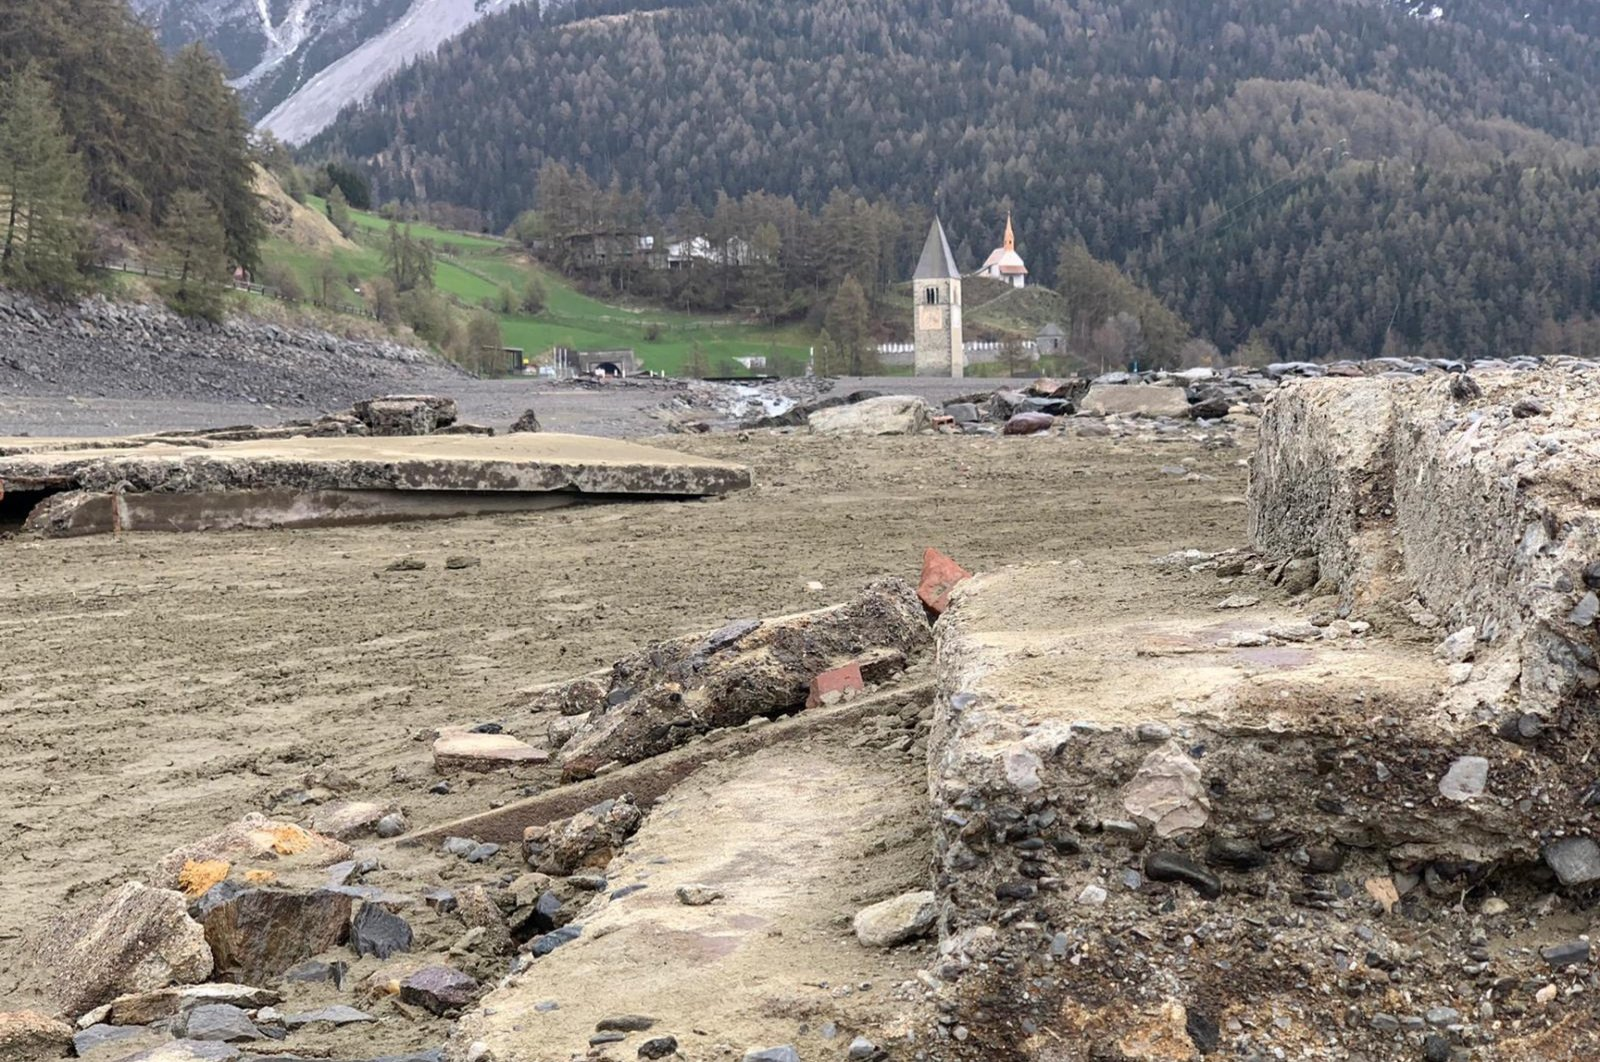 The famous St. Catherine Church bell tower stands in the drained Lake Reschen, Resia, Italy, May 14, 2021. (EPA/G.News Photo)